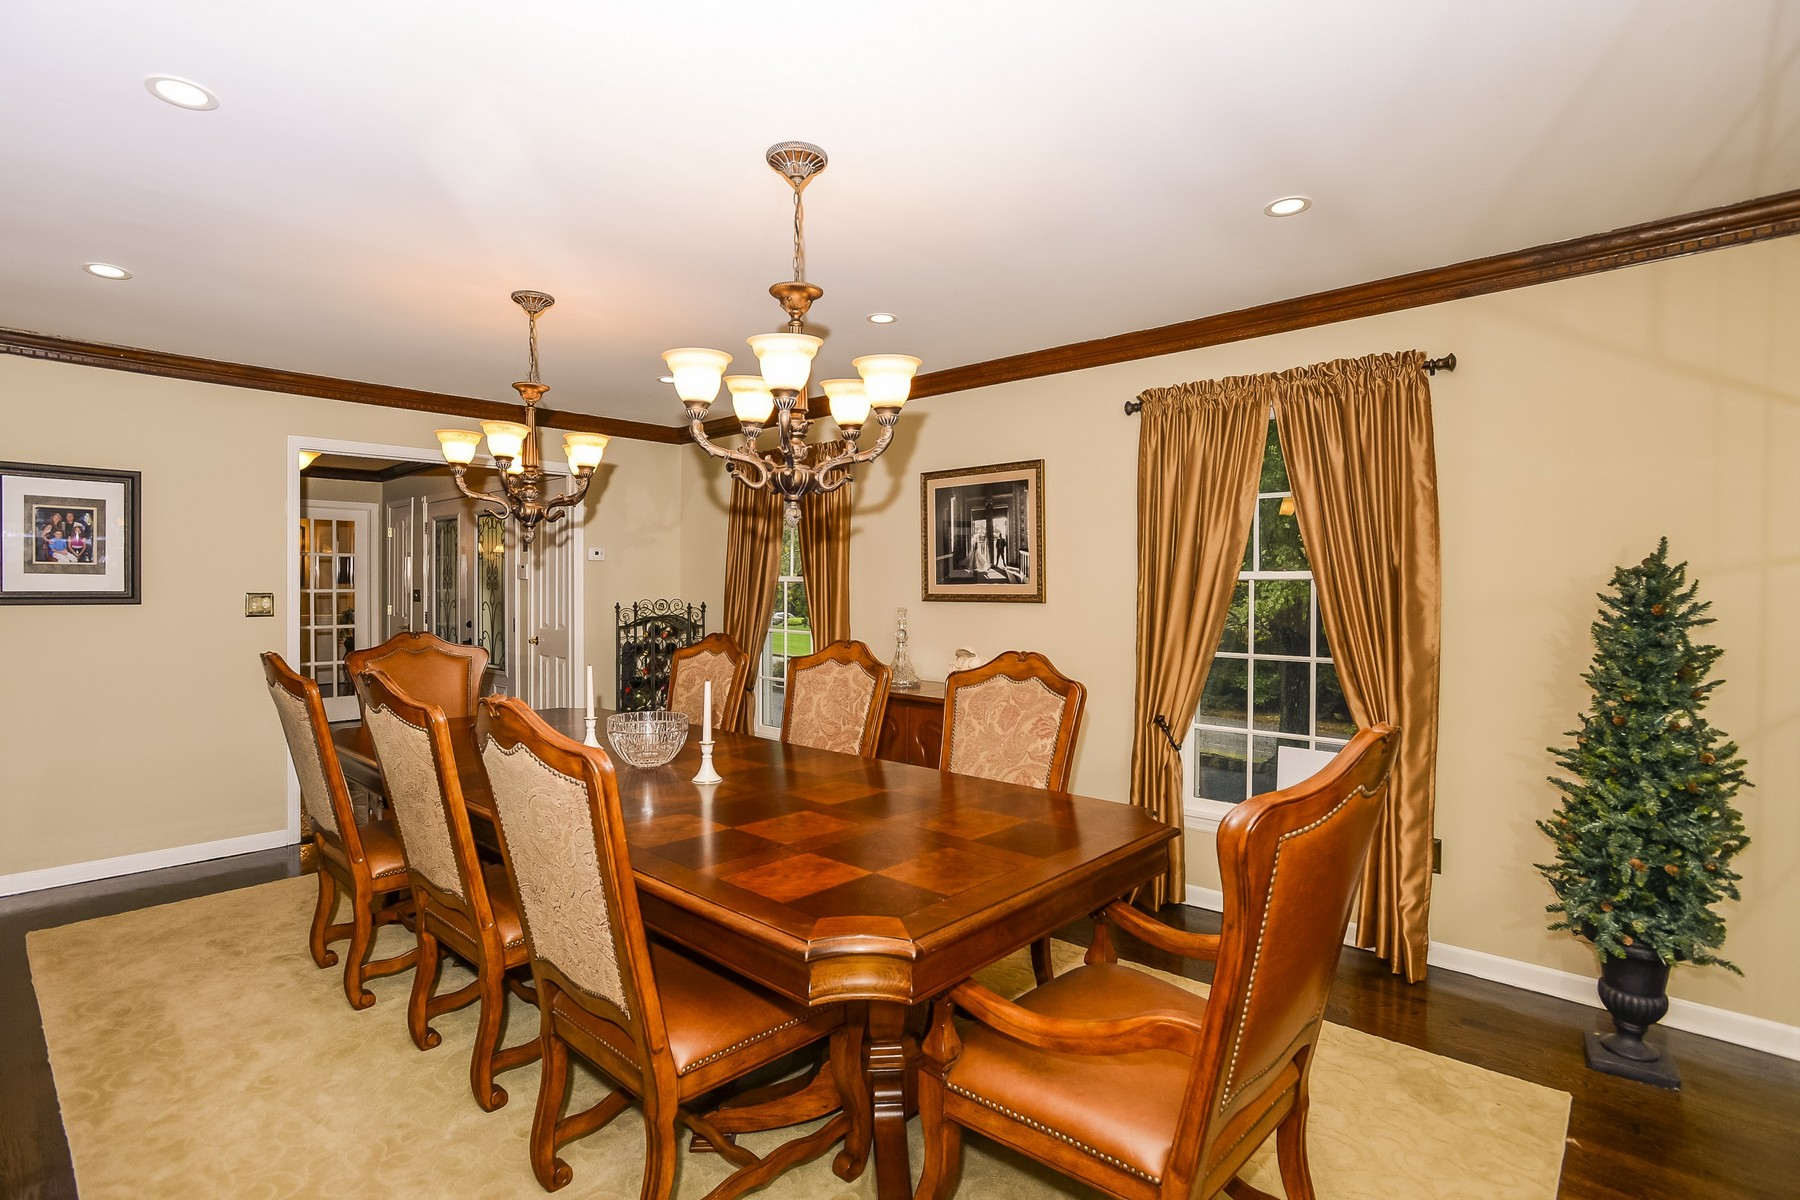 Additional photo for property listing at Spacious Colonial with mother/daughter addition 12 Jennifer Dr. Holmdel, New Jersey 07733 United States